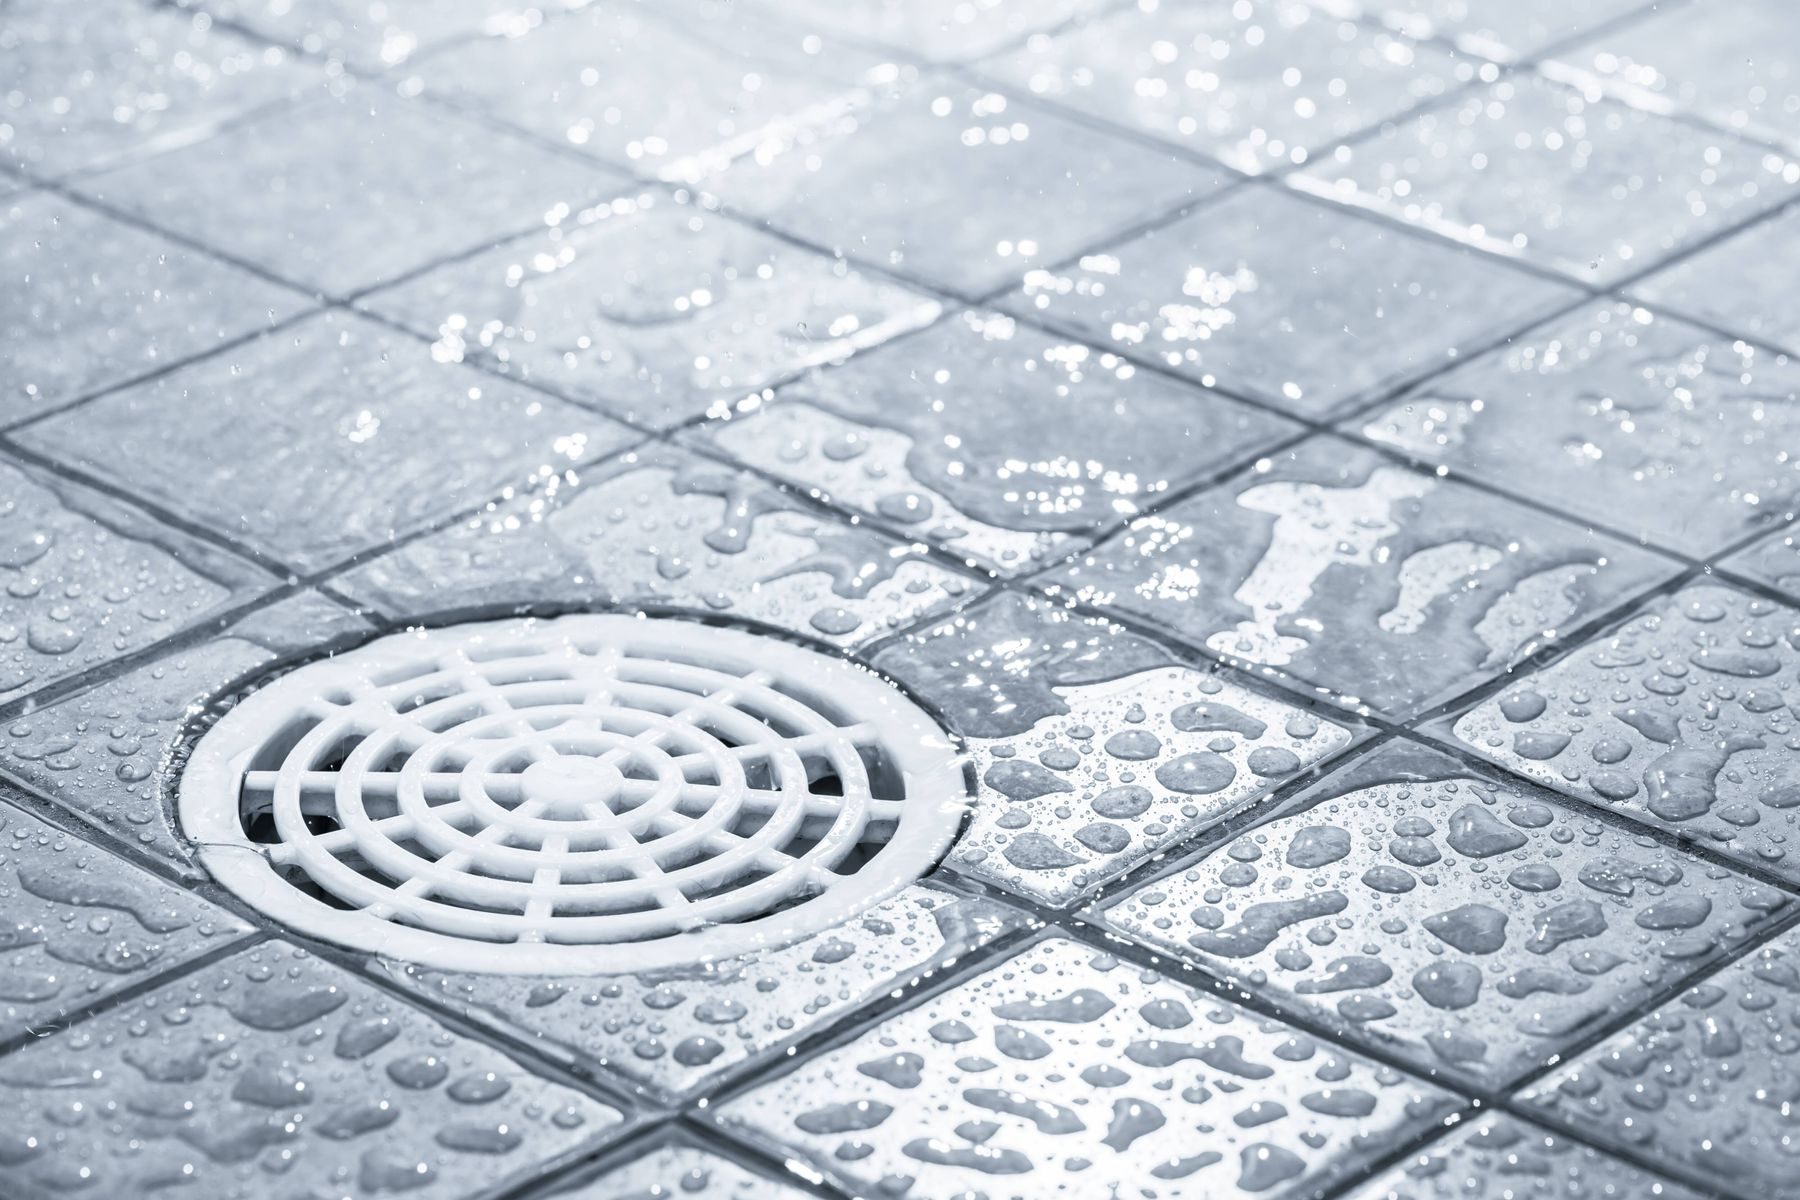 a white drain in a tiled silver floor